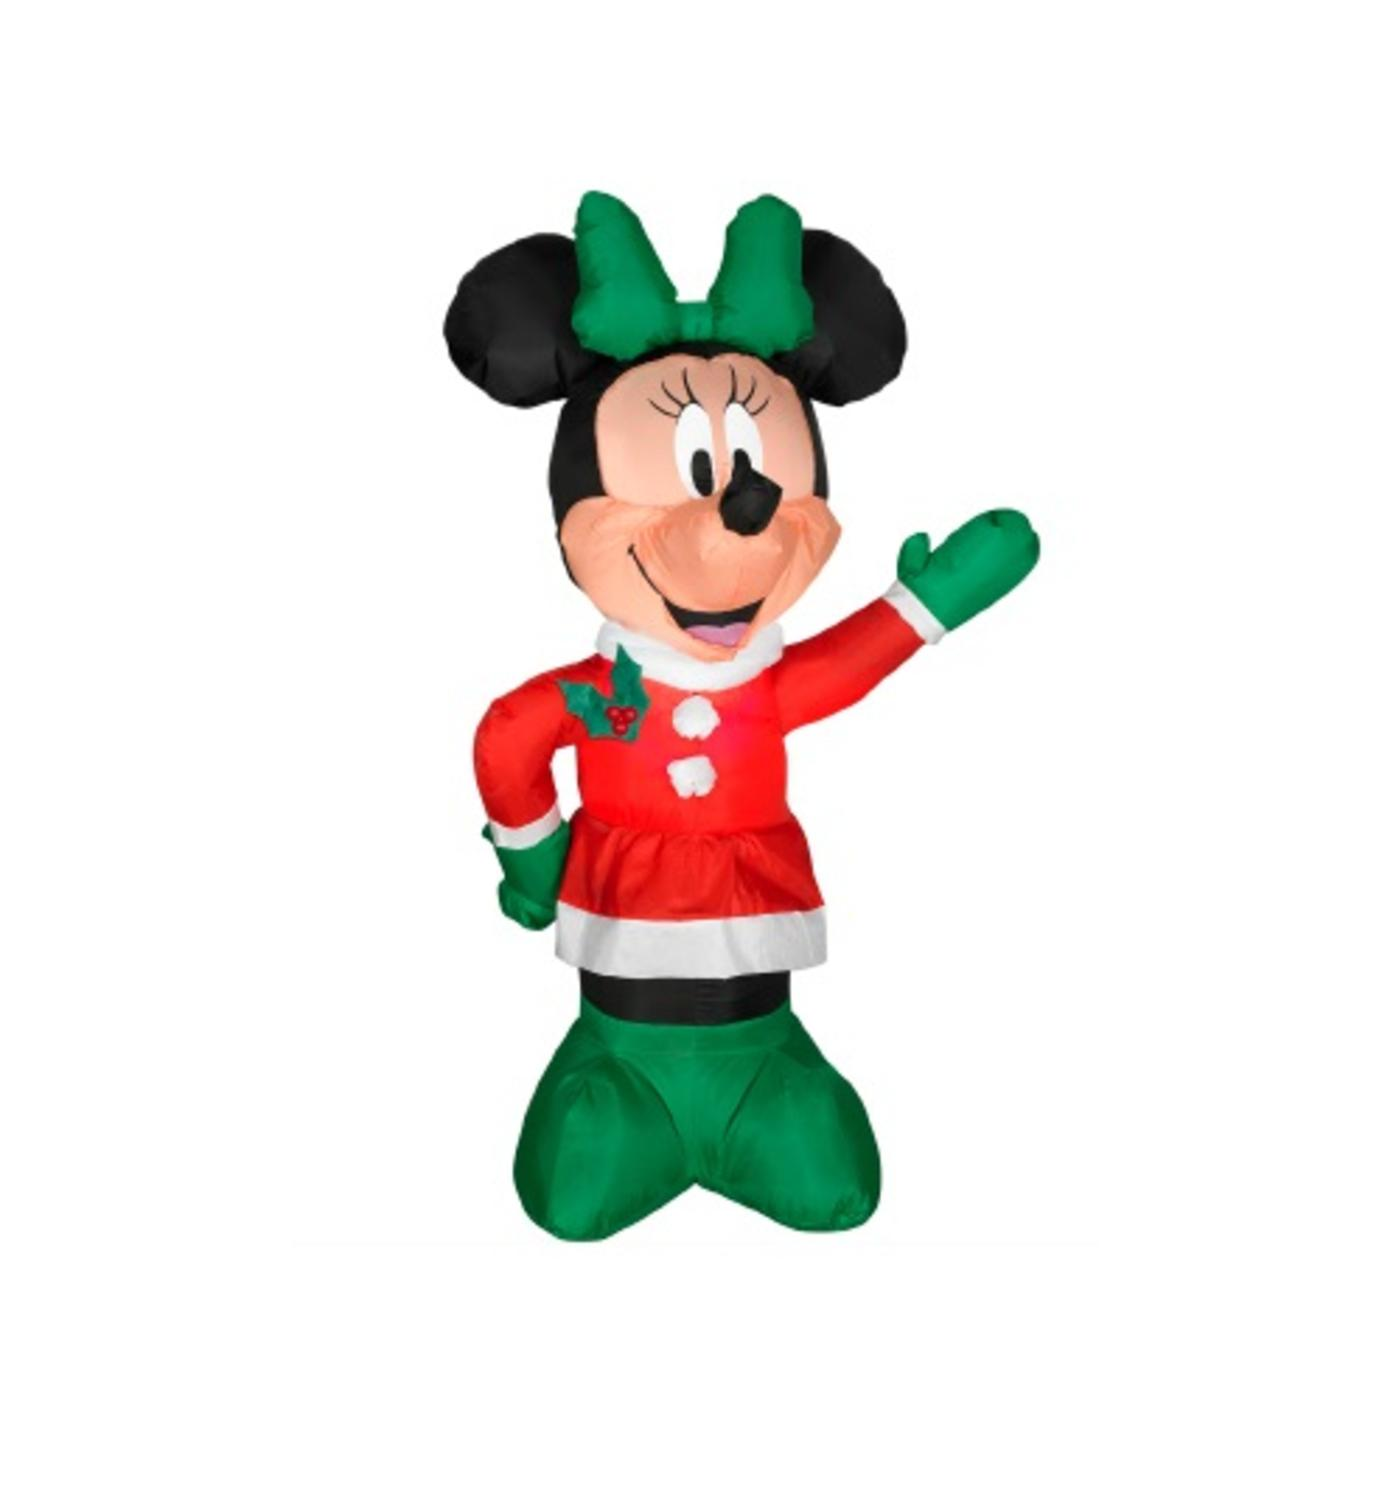 3.5' Inflatable DISNEY LED Lighted Winter Minnie Mouse Christmas Yard Art Decoration